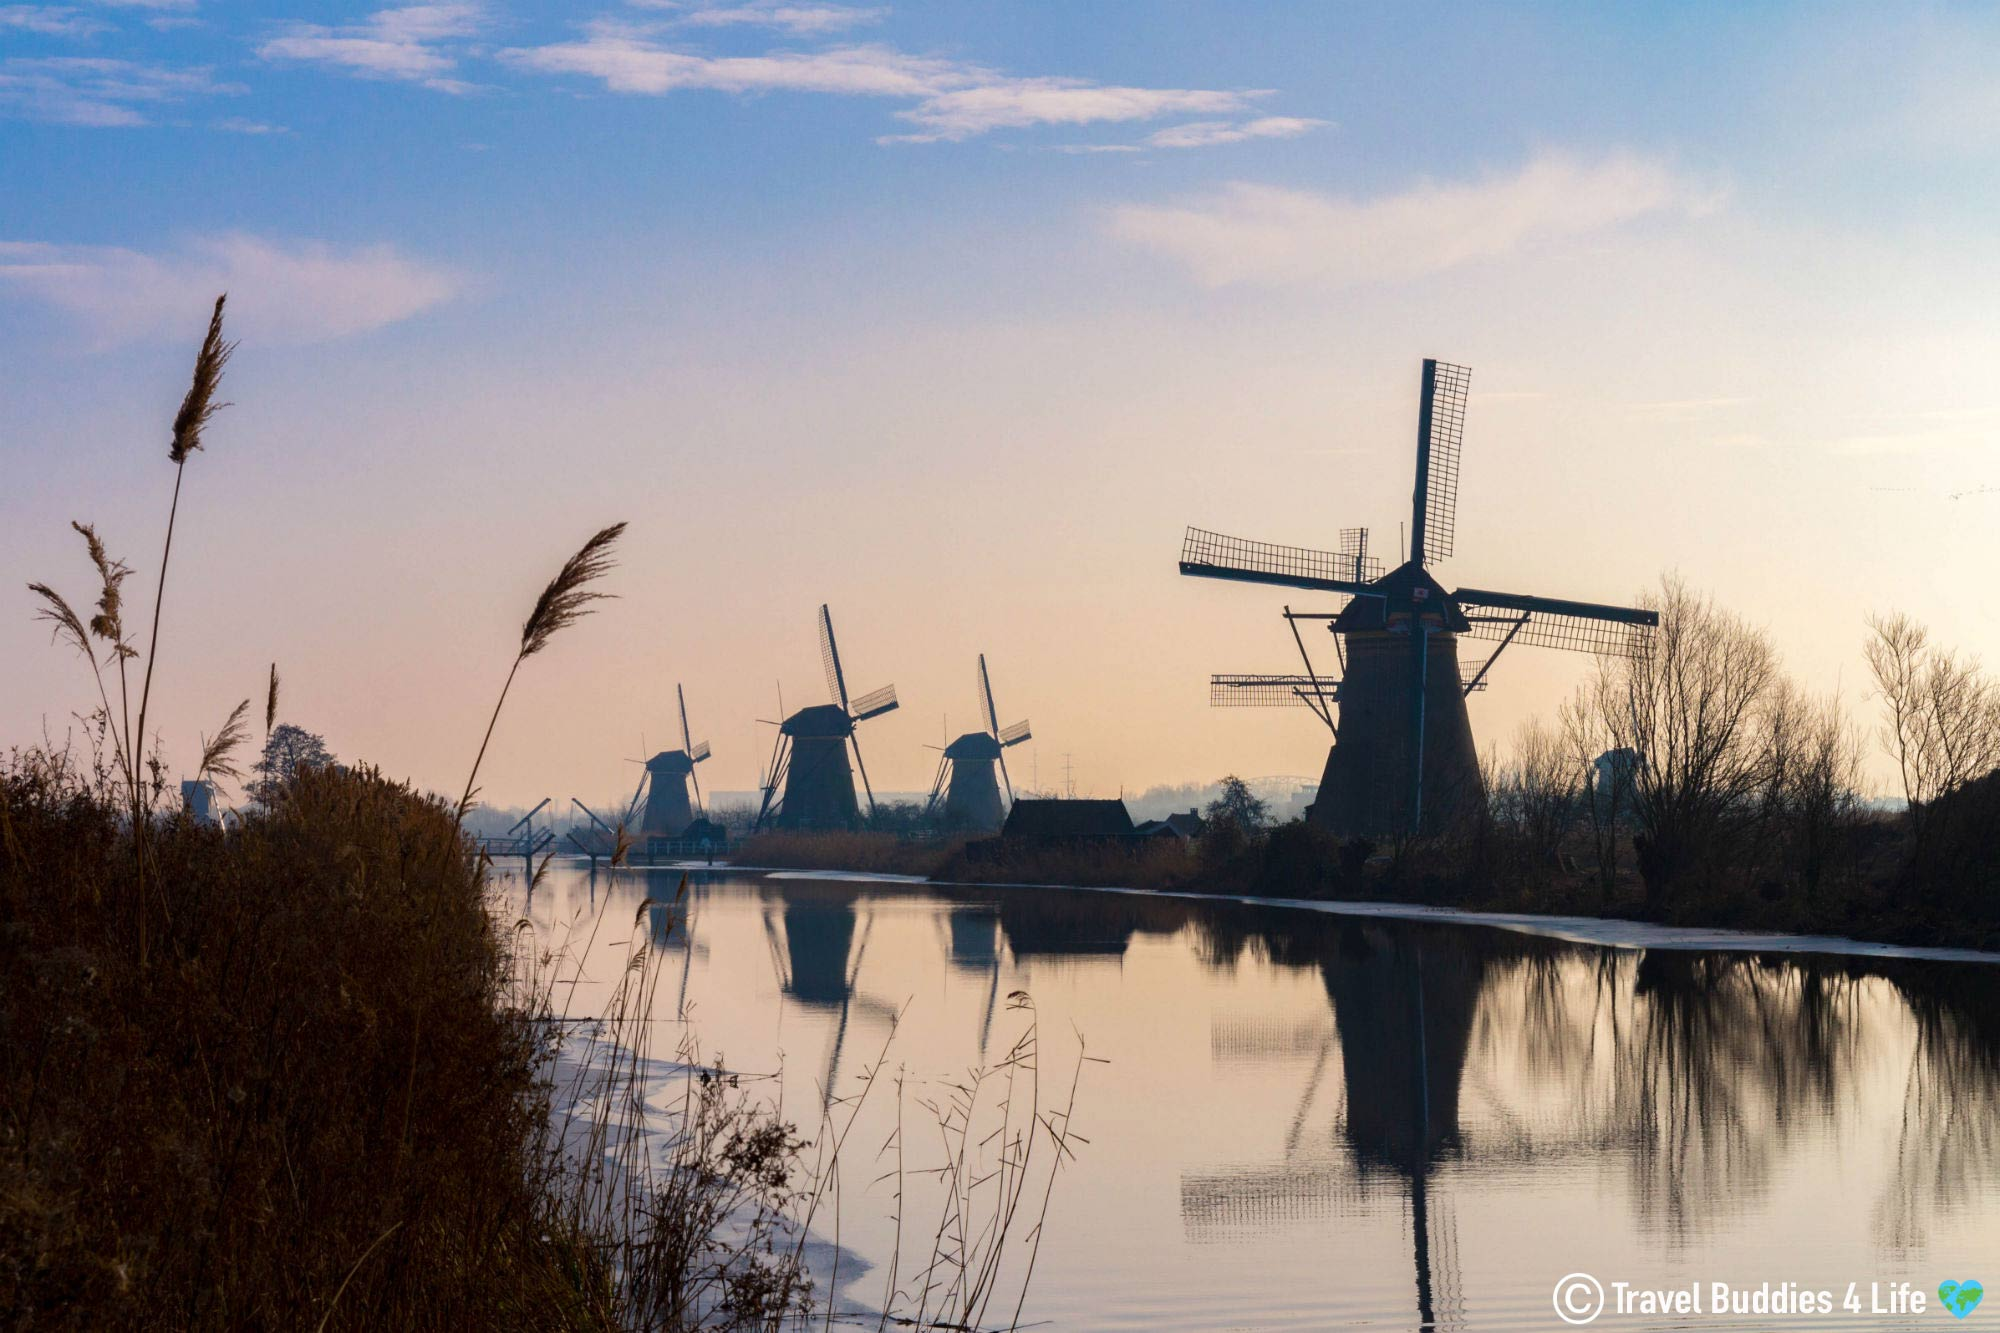 A Watercolour Pink Sky And The Contour Of Kinderdijk Windmills In The Netherlands, Europe